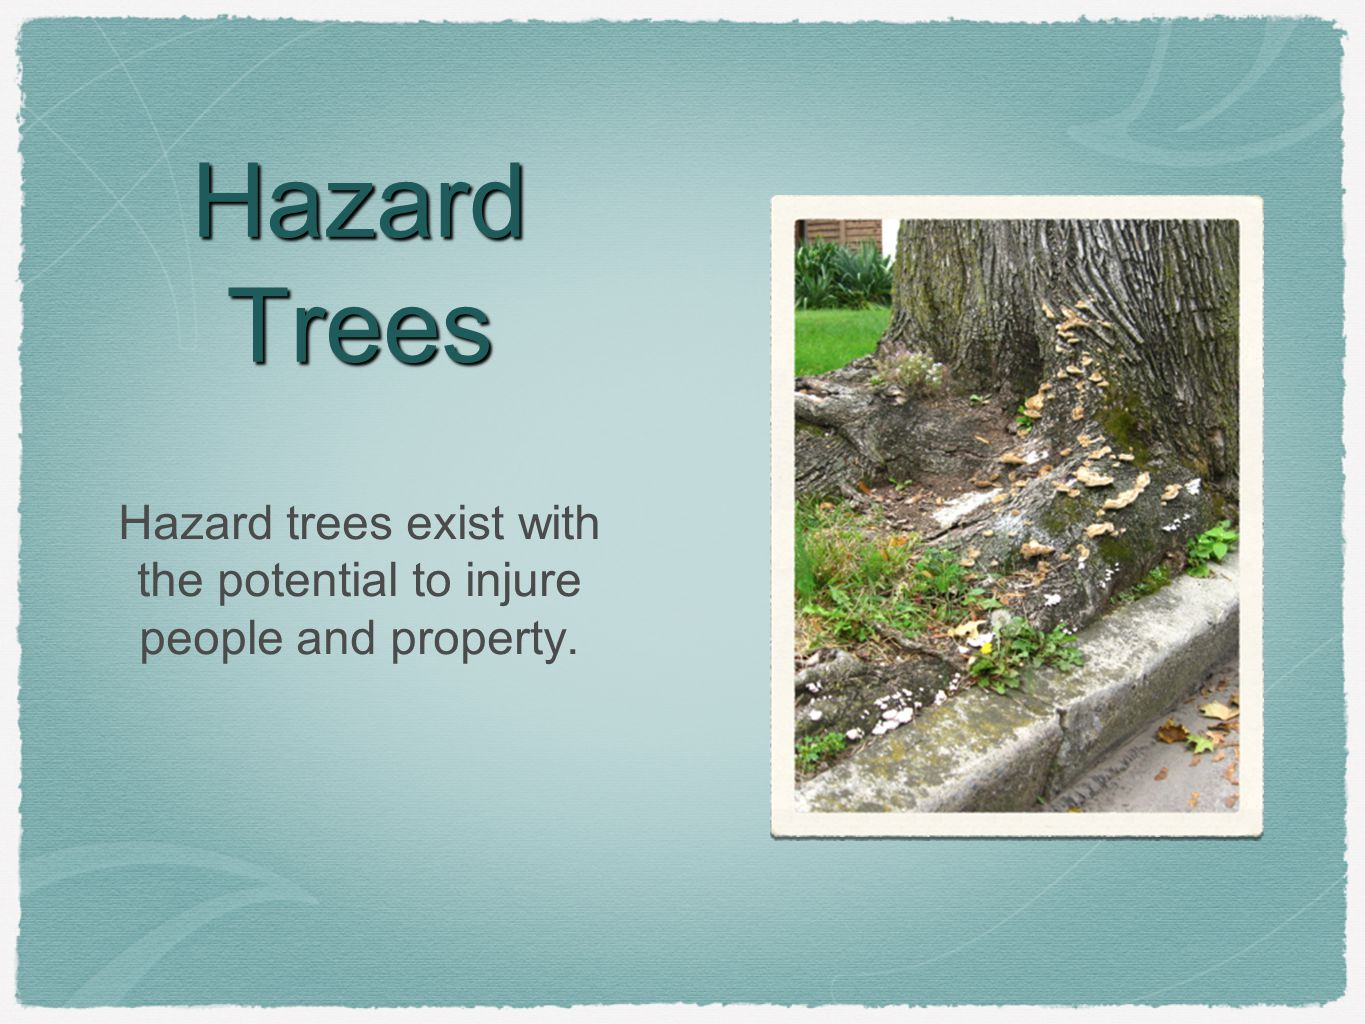 Hazard Trees Hazard trees exist with the potential to injure people and property.